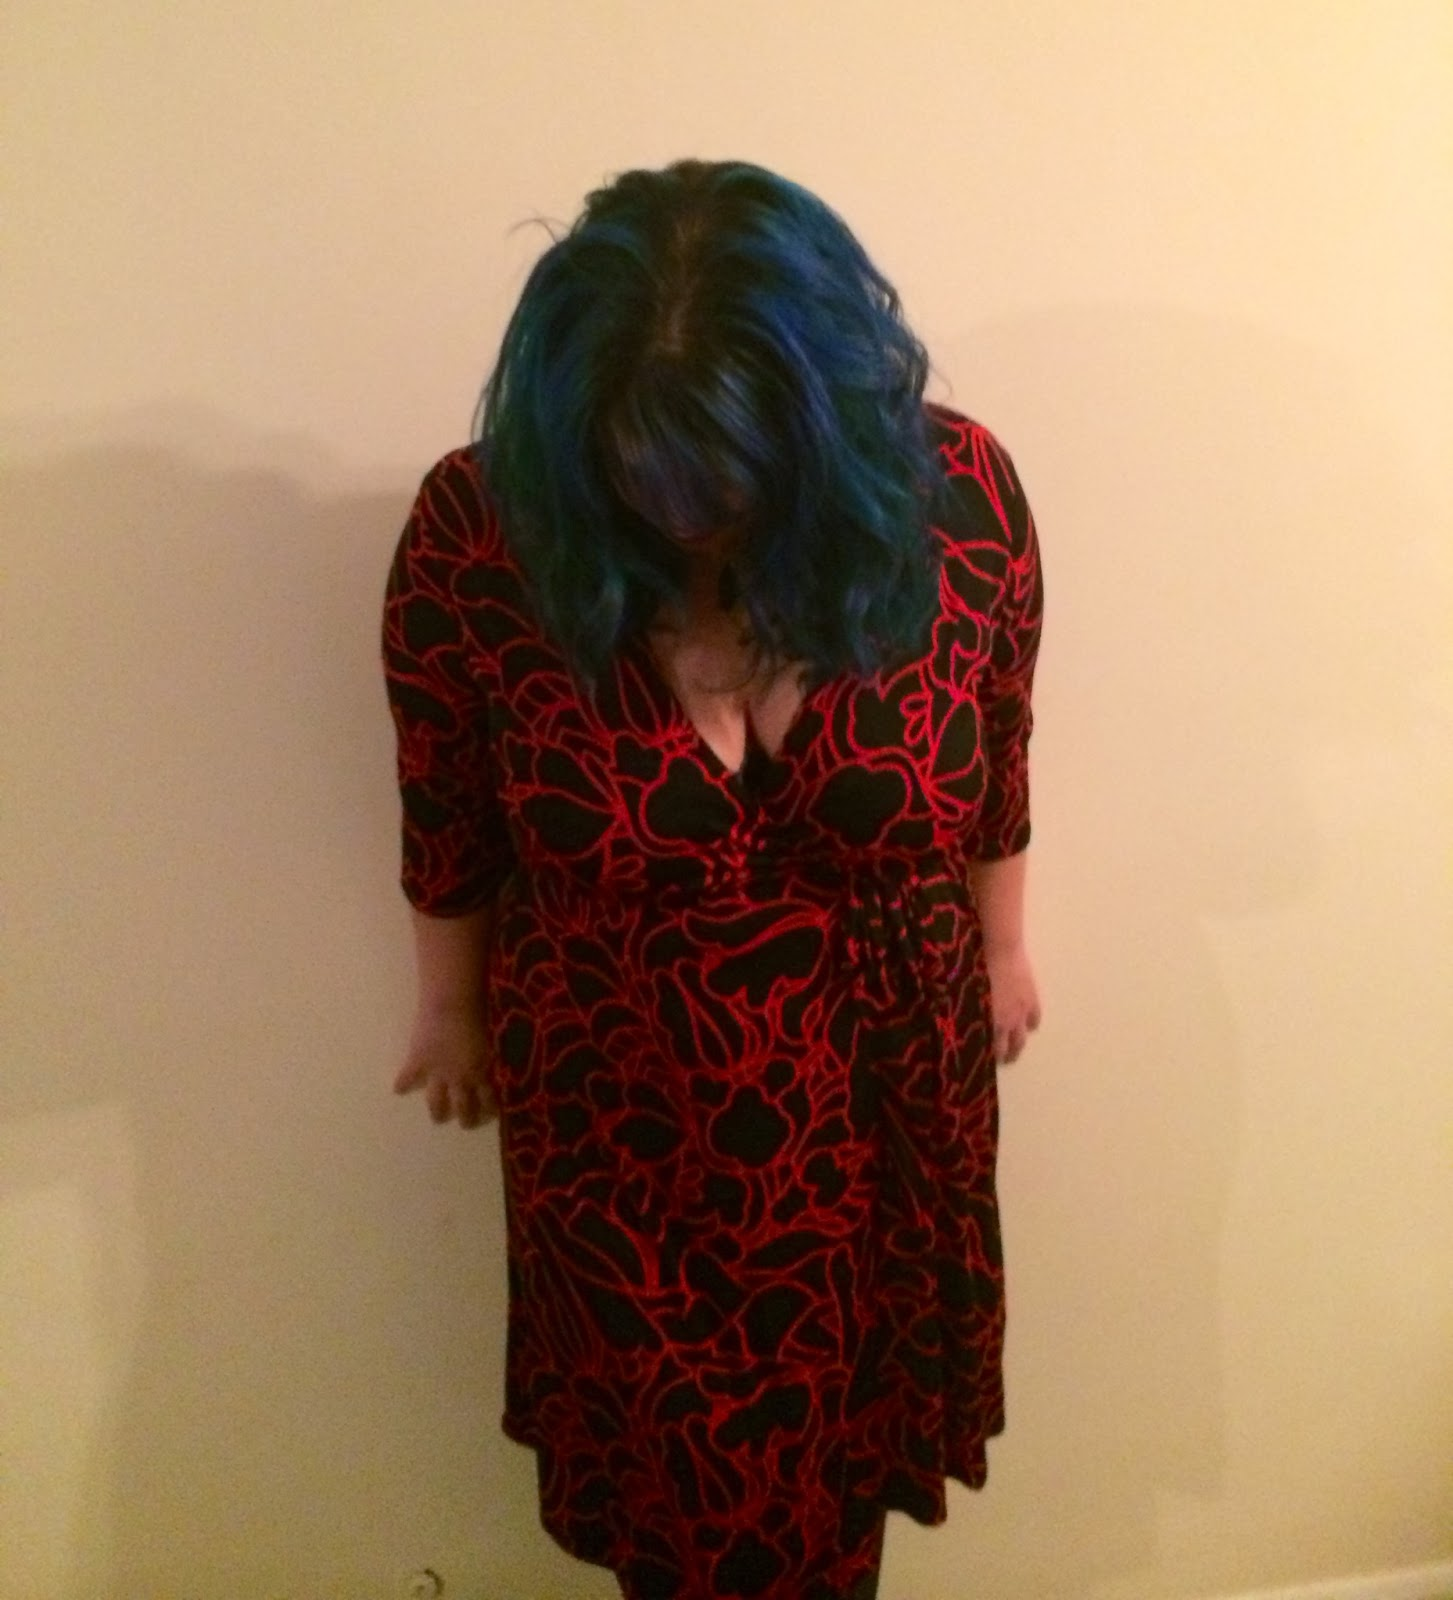 red dress, blue hair, fashion